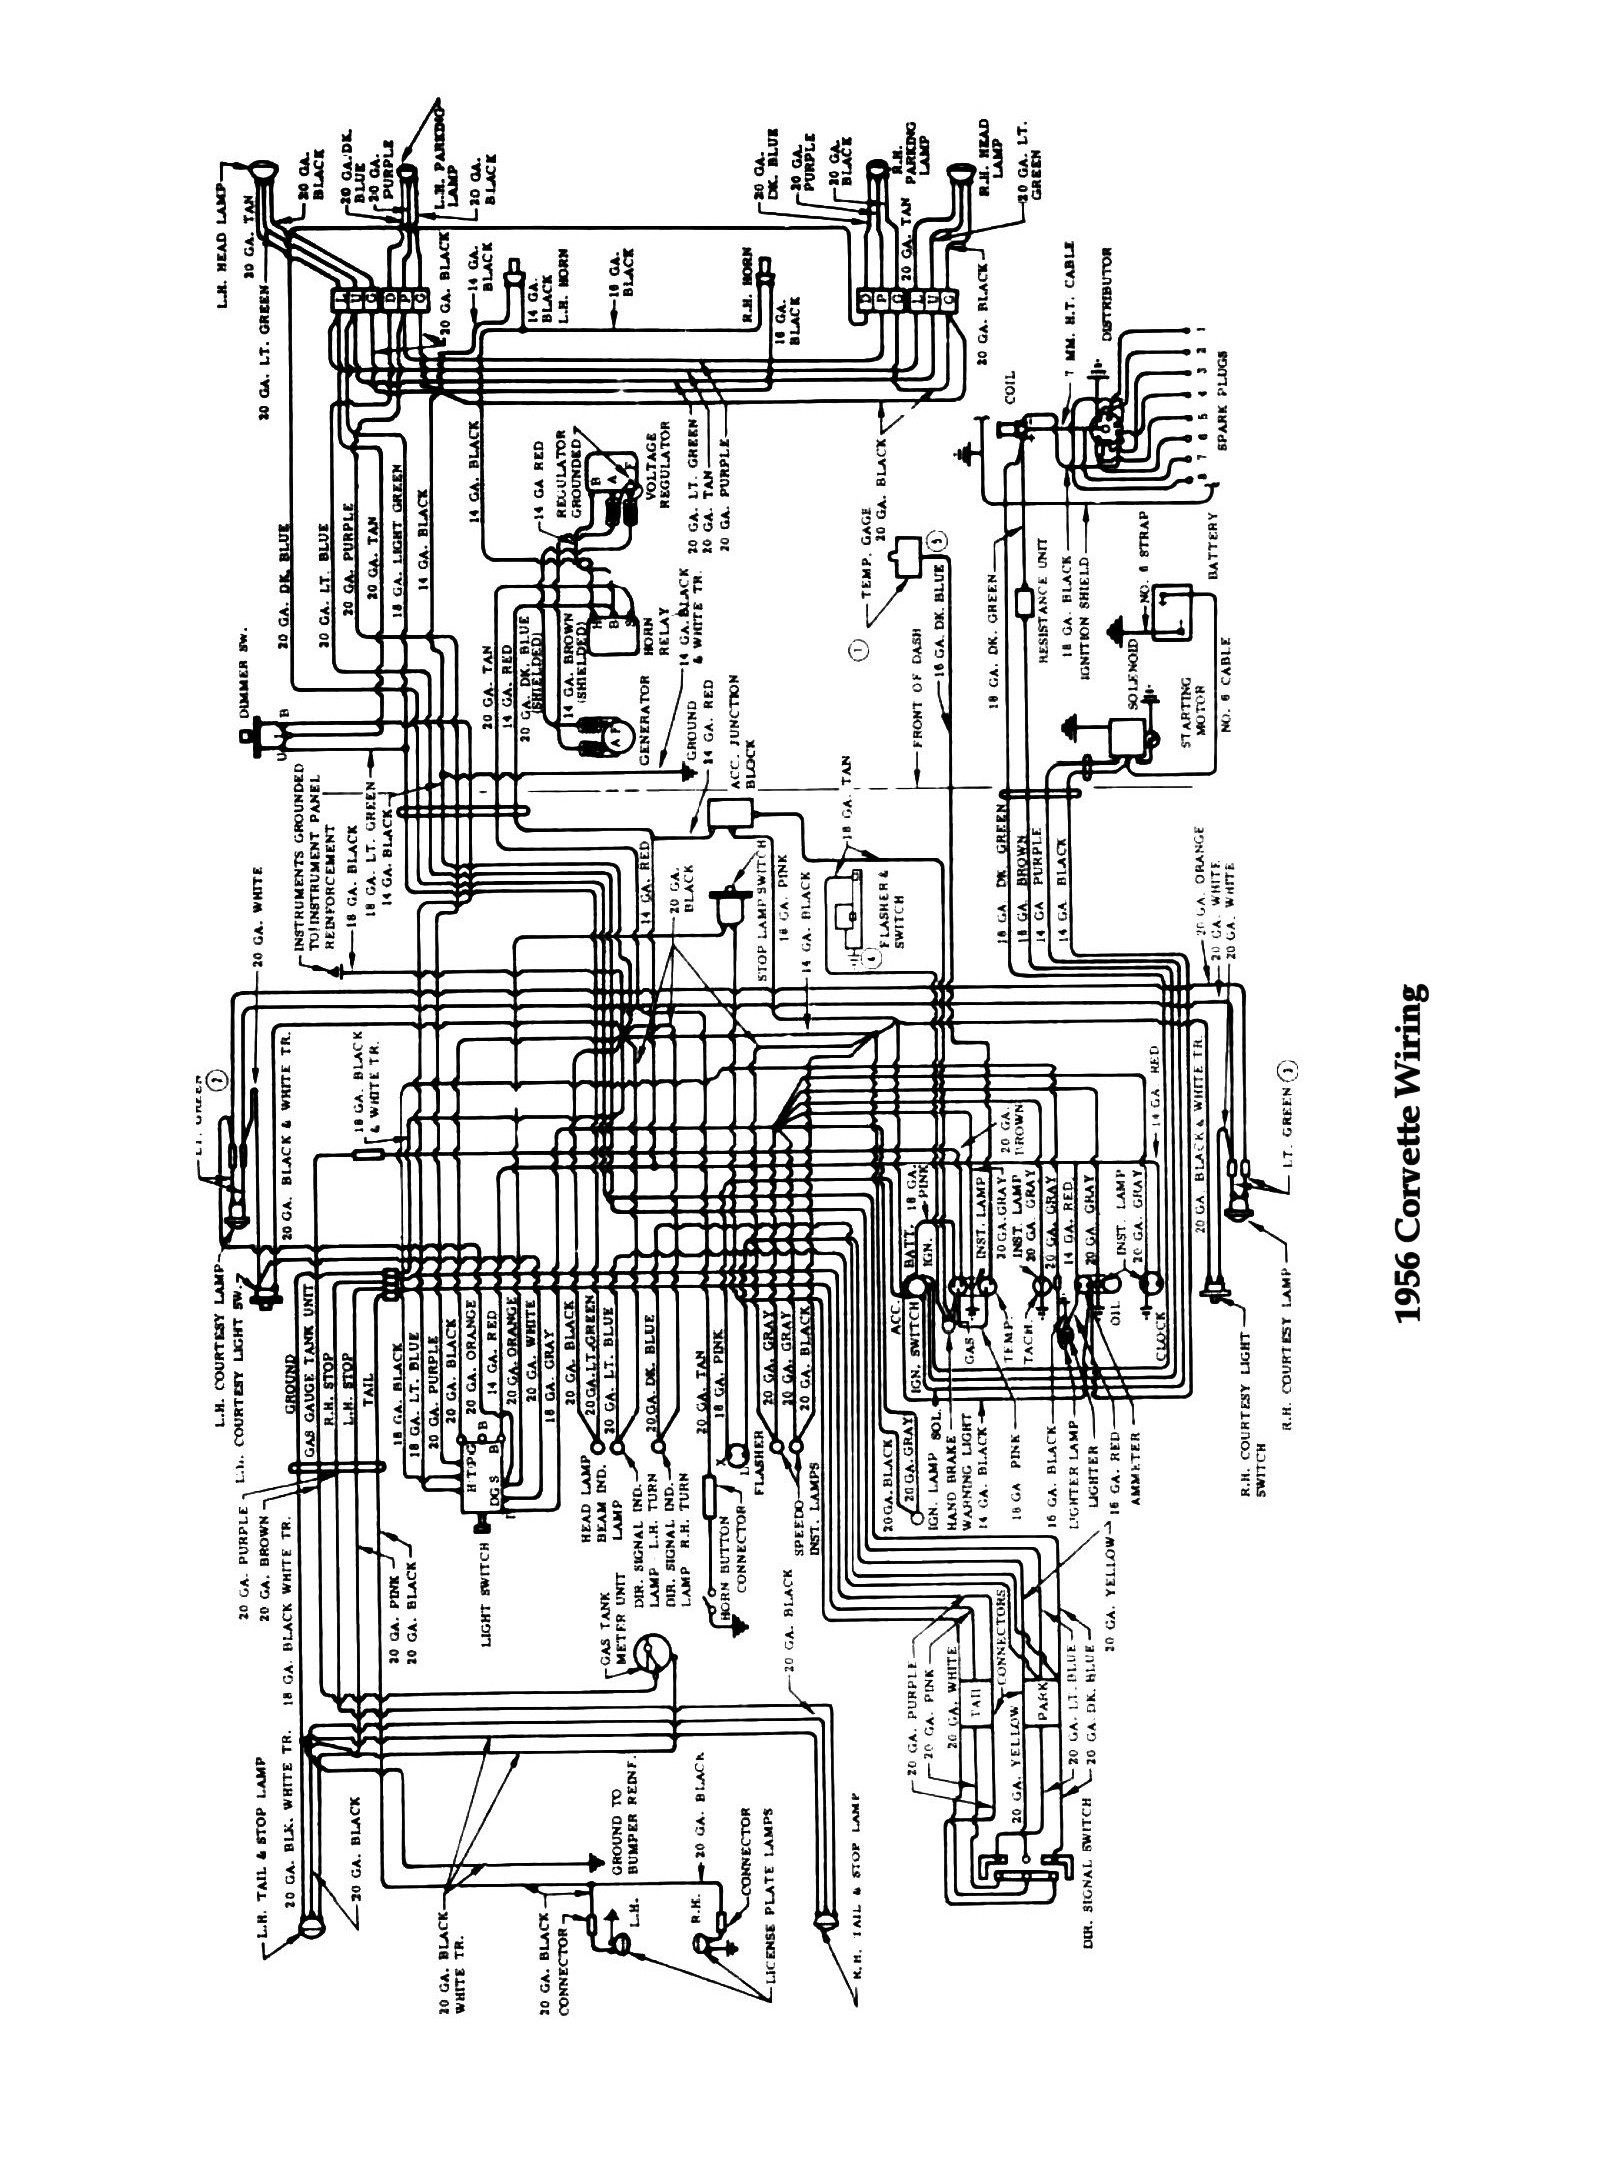 56corvette chevy wiring diagrams 1959 cadillac 390 engine wiring diagram at mifinder.co